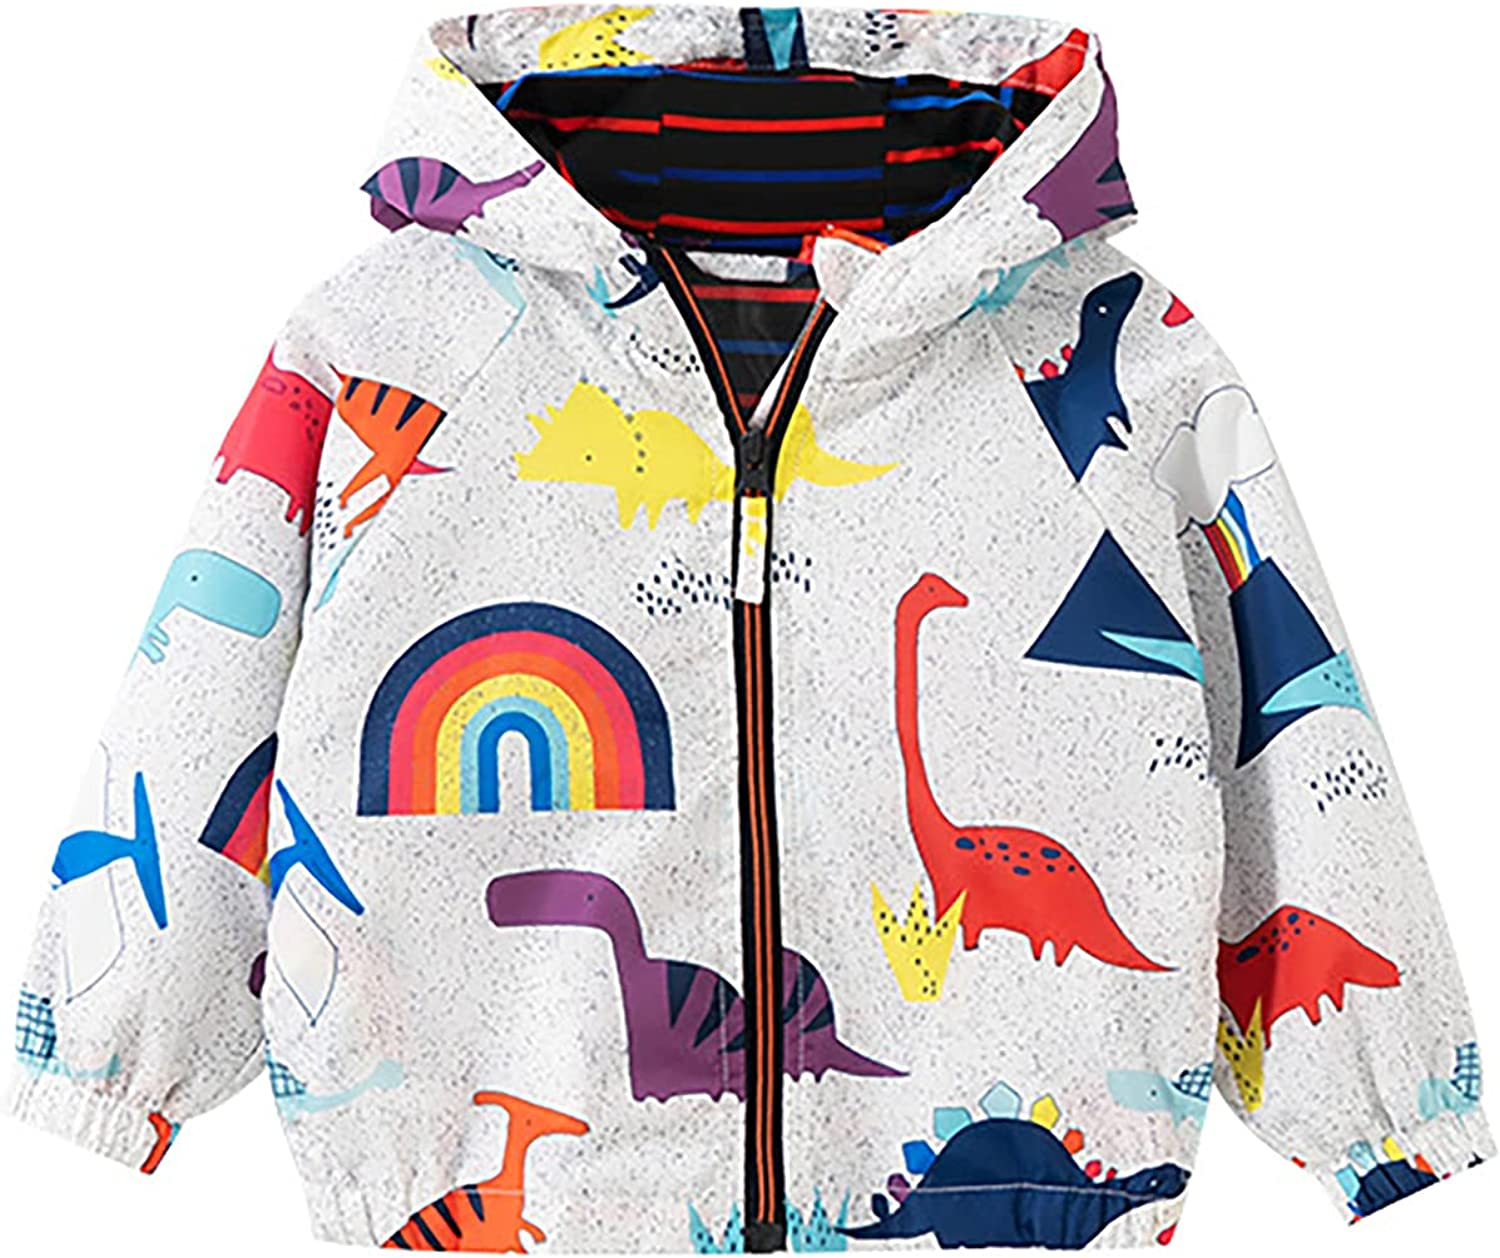 Toddler Boys Spring Fall Outfit Zipper Hooded Windbreaker Jacket Baby Kids Windproof Coat Outerwear Clothes